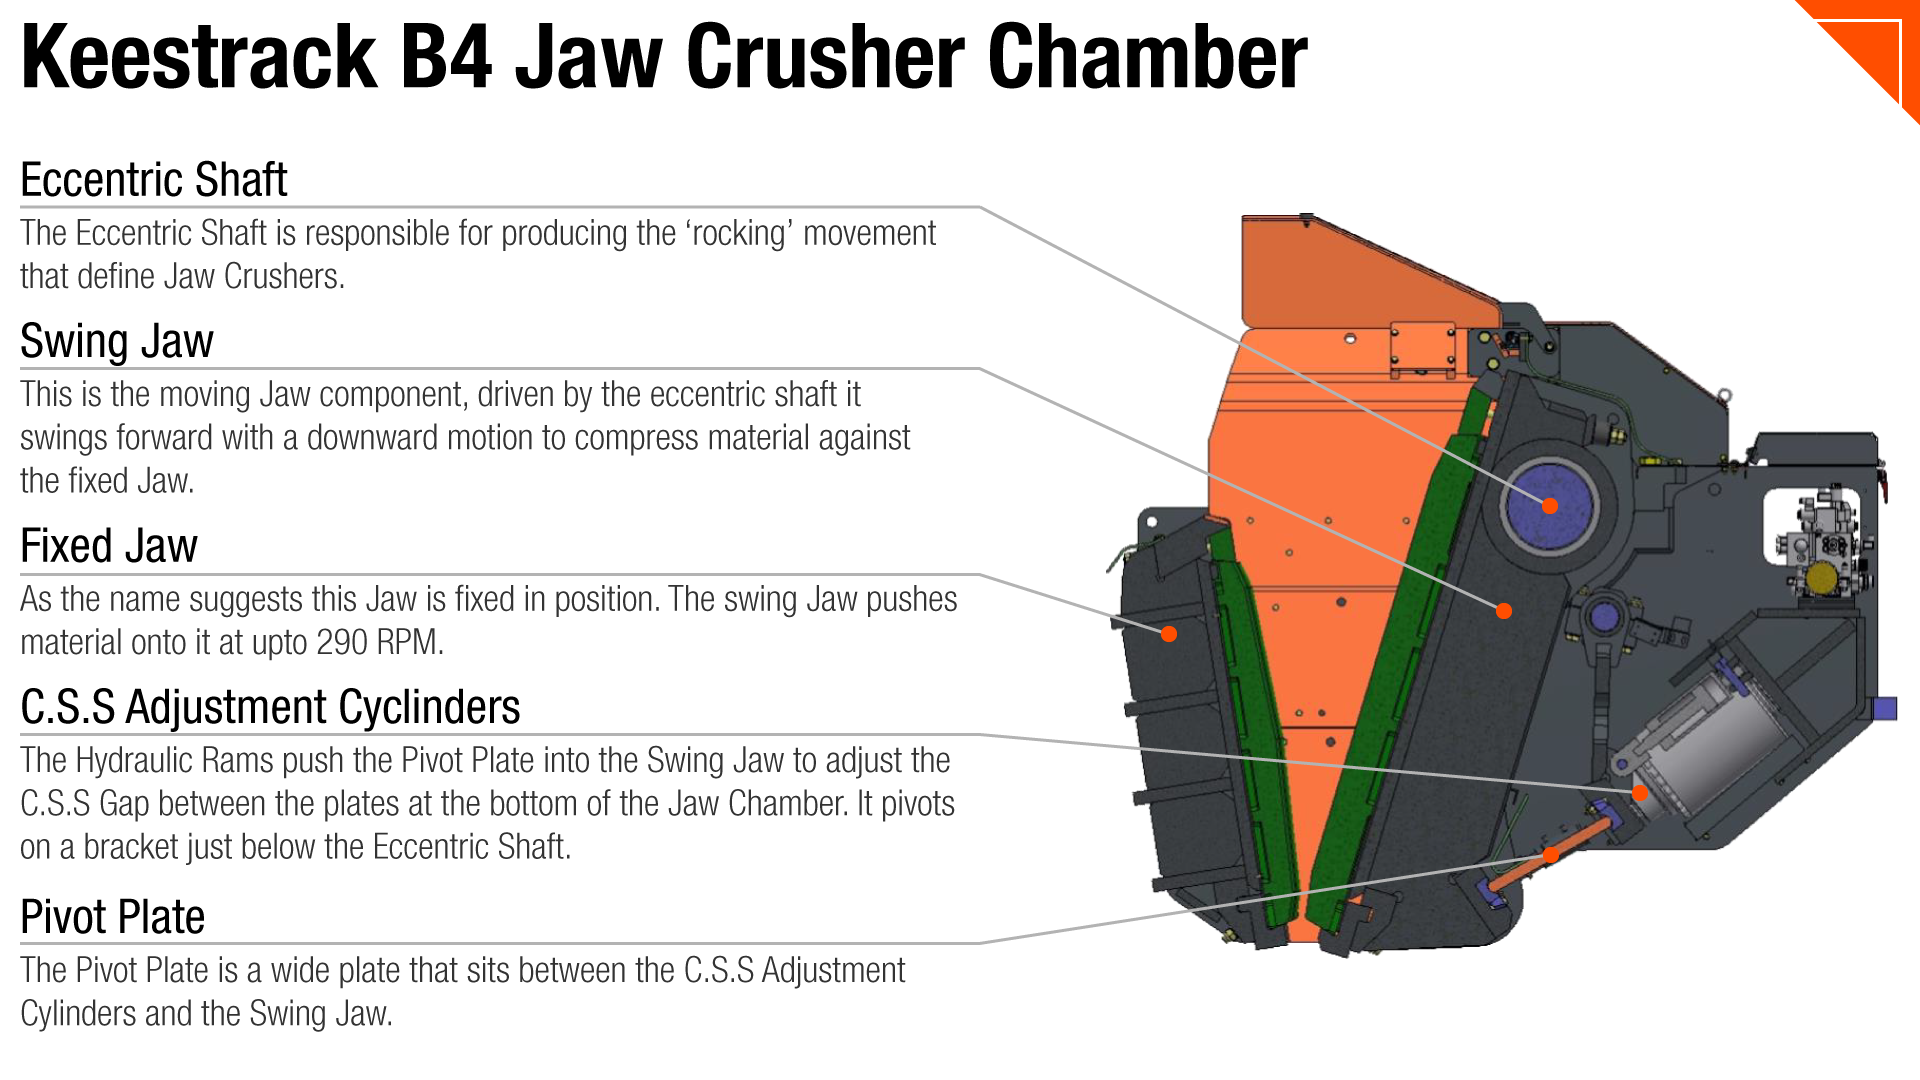 Keestrack Jaw Crusher components